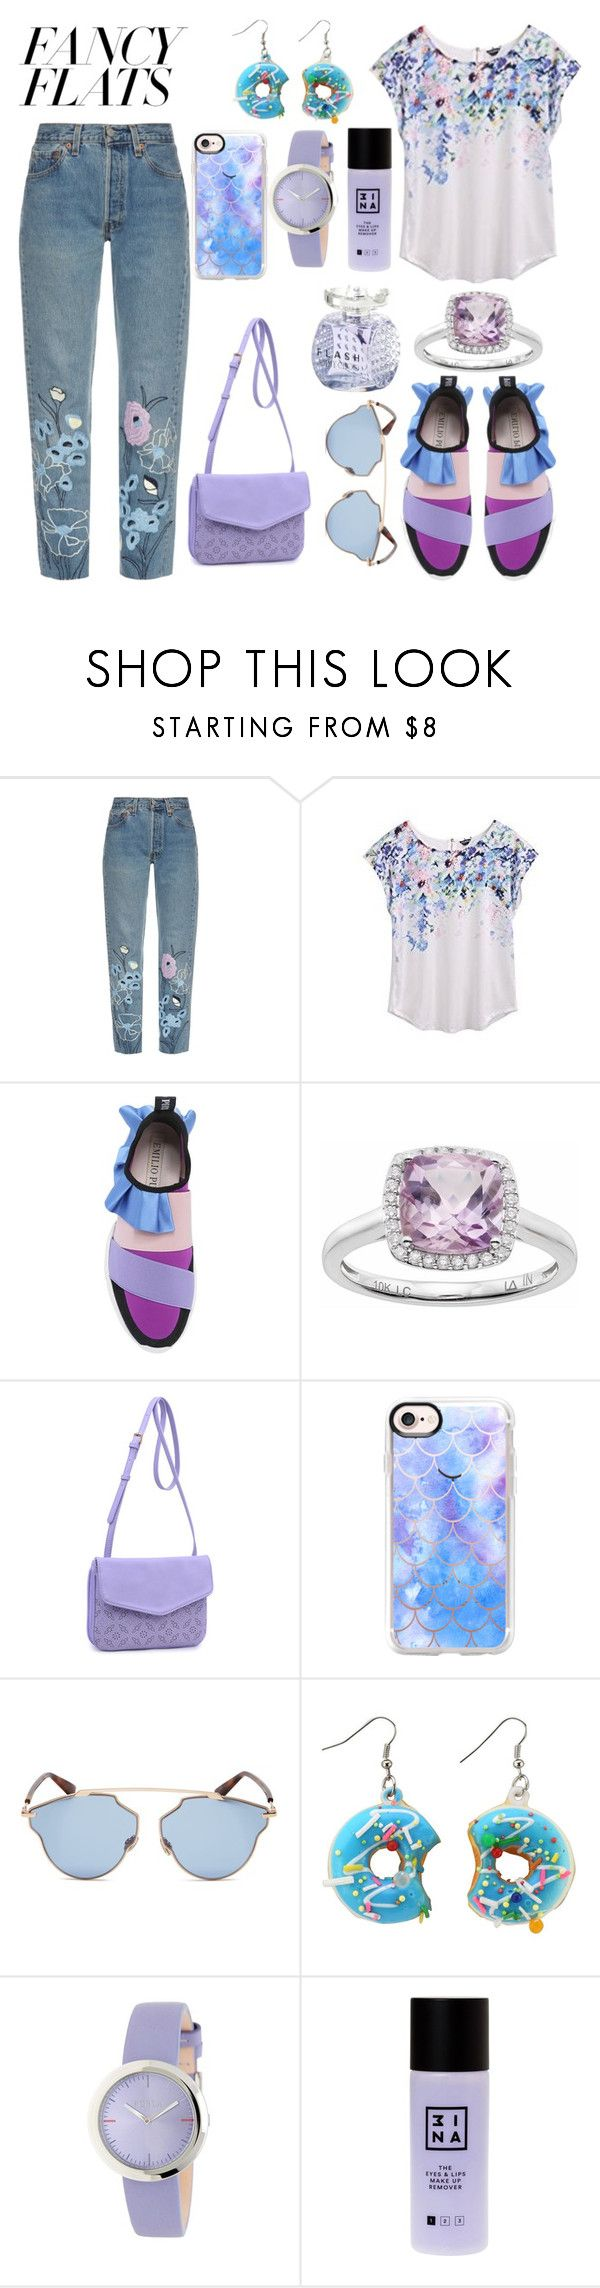 """Untitled #148"" by akoeva-s ❤ liked on Polyvore featuring Bliss and Mischief, Emilio Pucci, LC Lauren Conrad, Moda Luxe, Casetify, Christian Dior, Furla, 3ina, Jimmy Choo and chicflats"